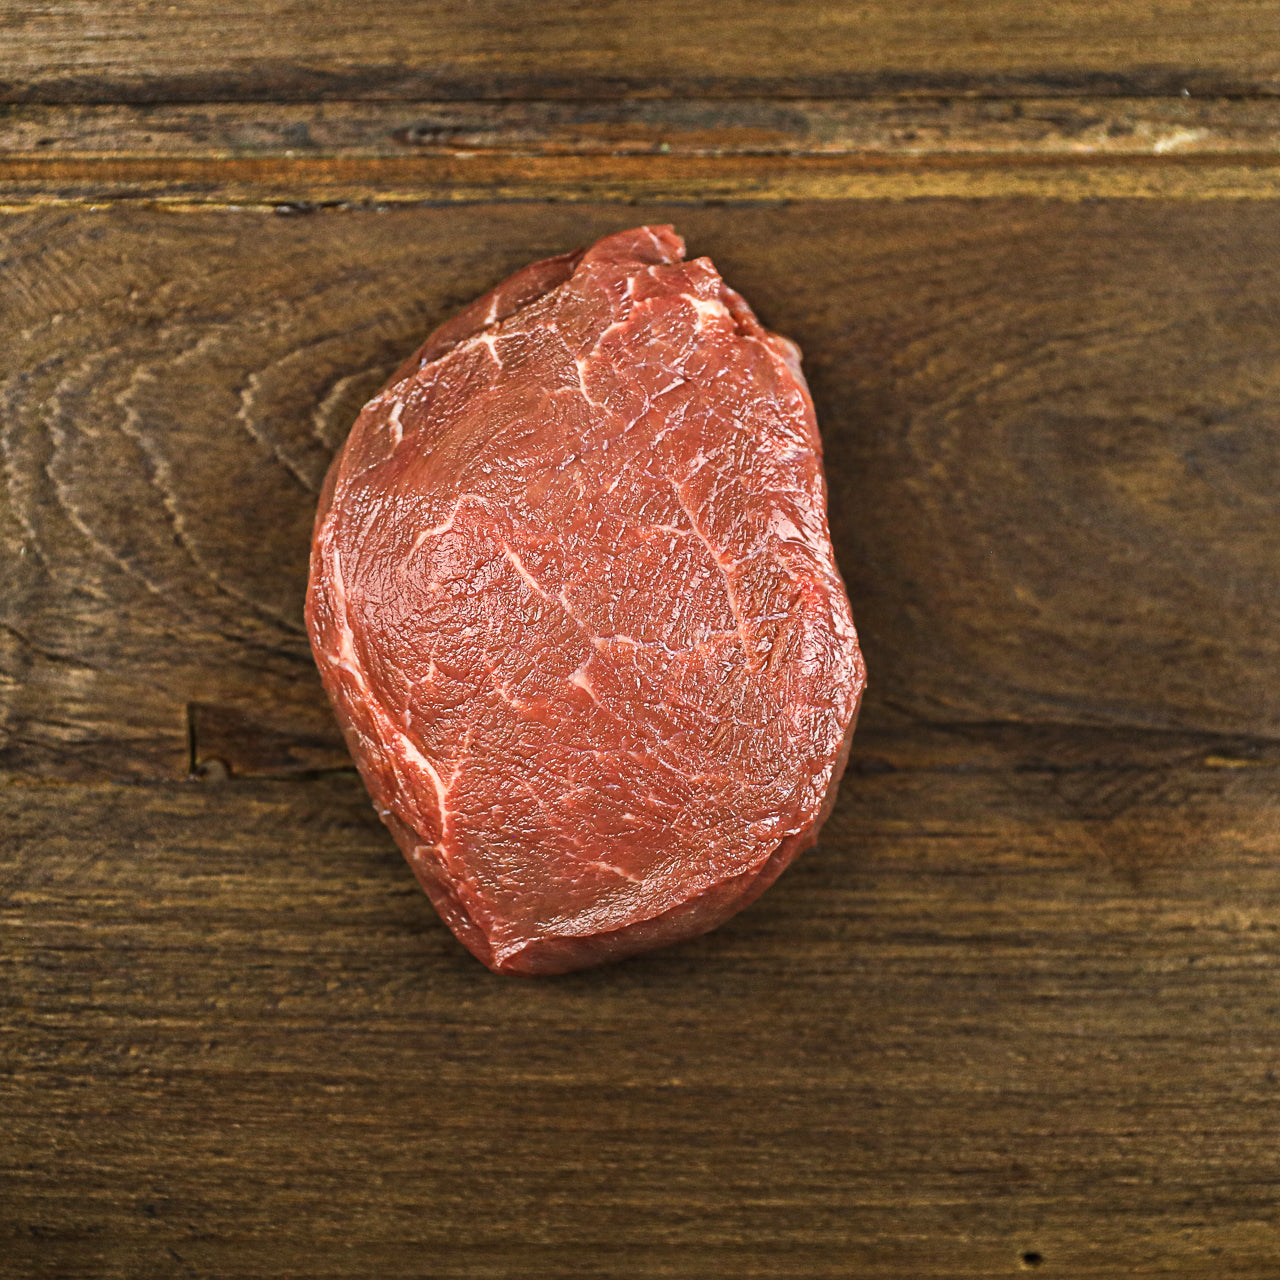 Pasture-Finished Sirloin Tip Steak